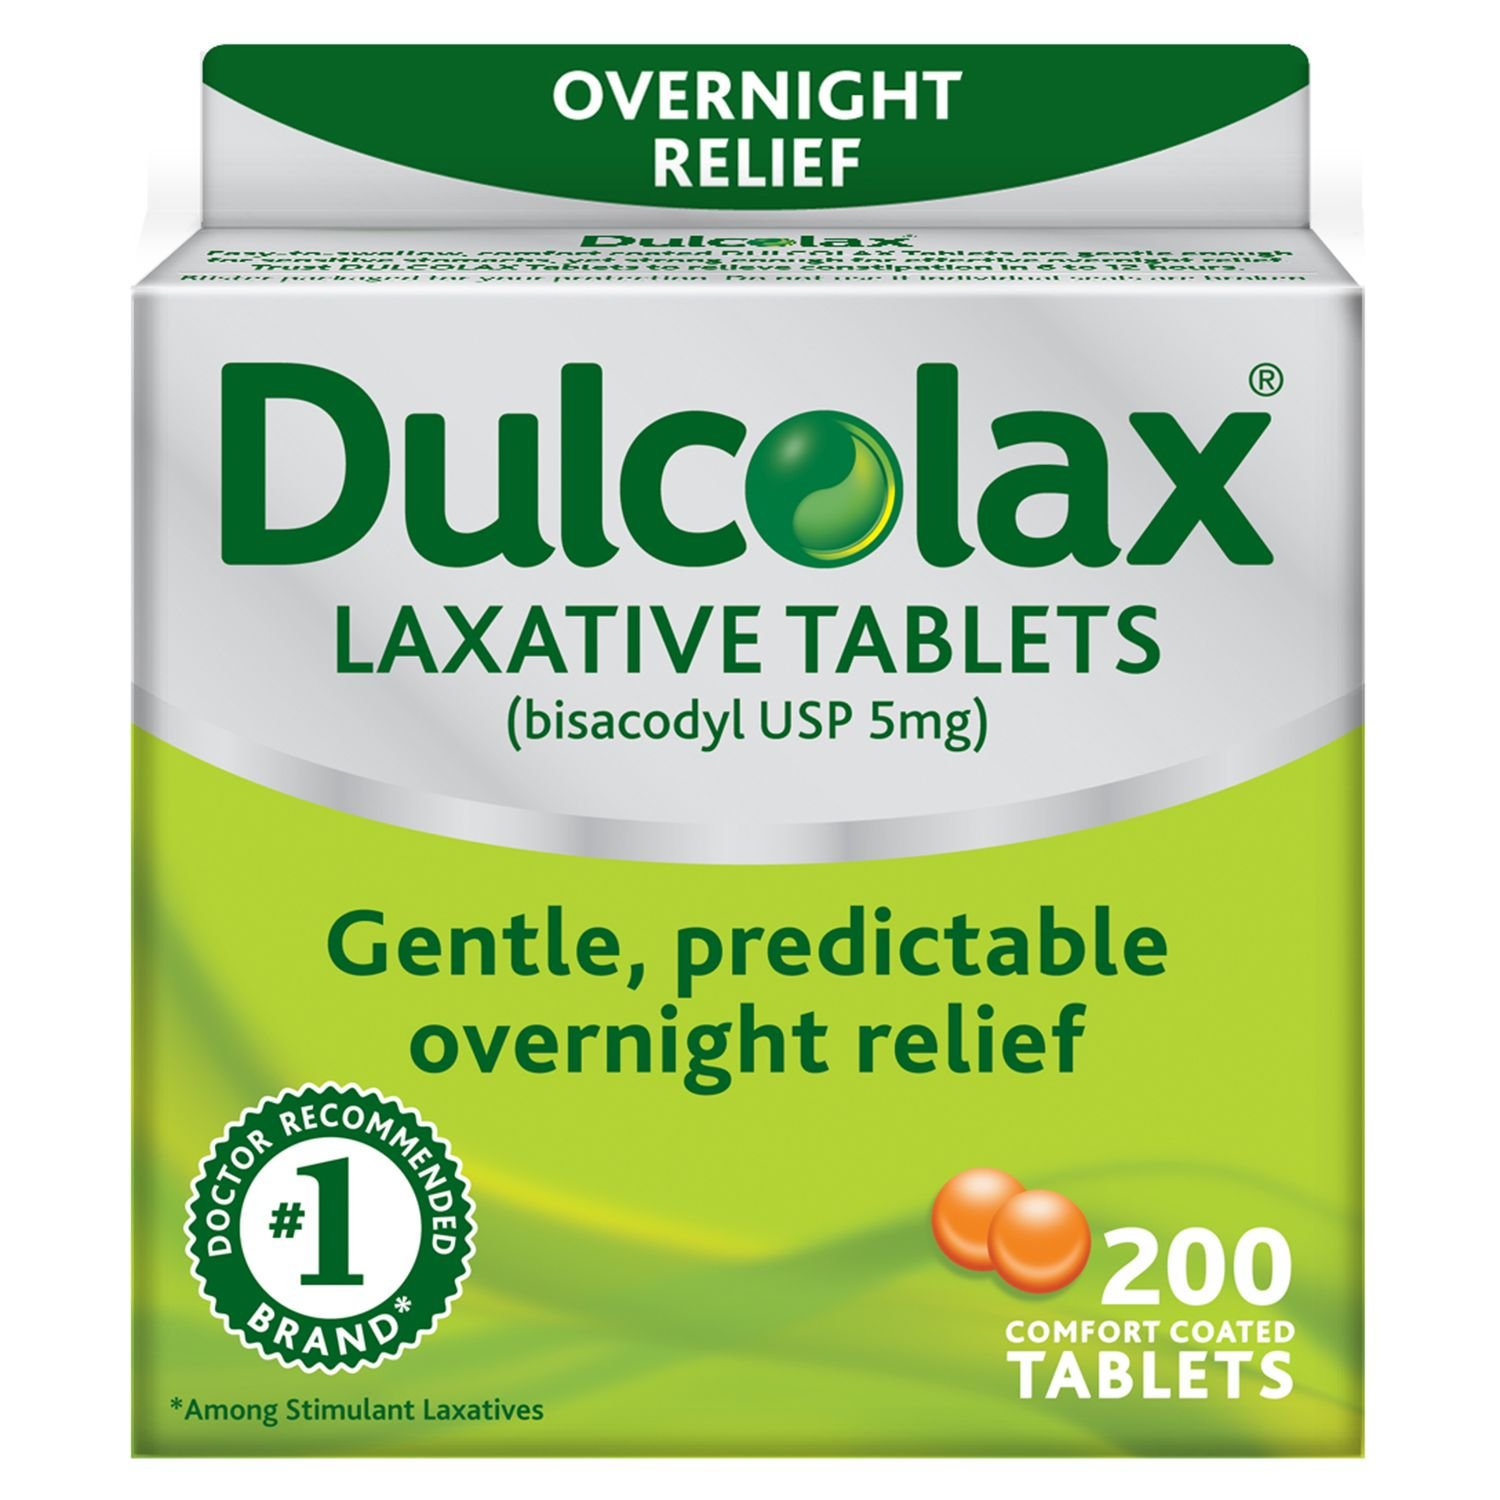 Dulcolax Laxative 5 mg - 200 Tablets (2 Packs) by Dulcolax